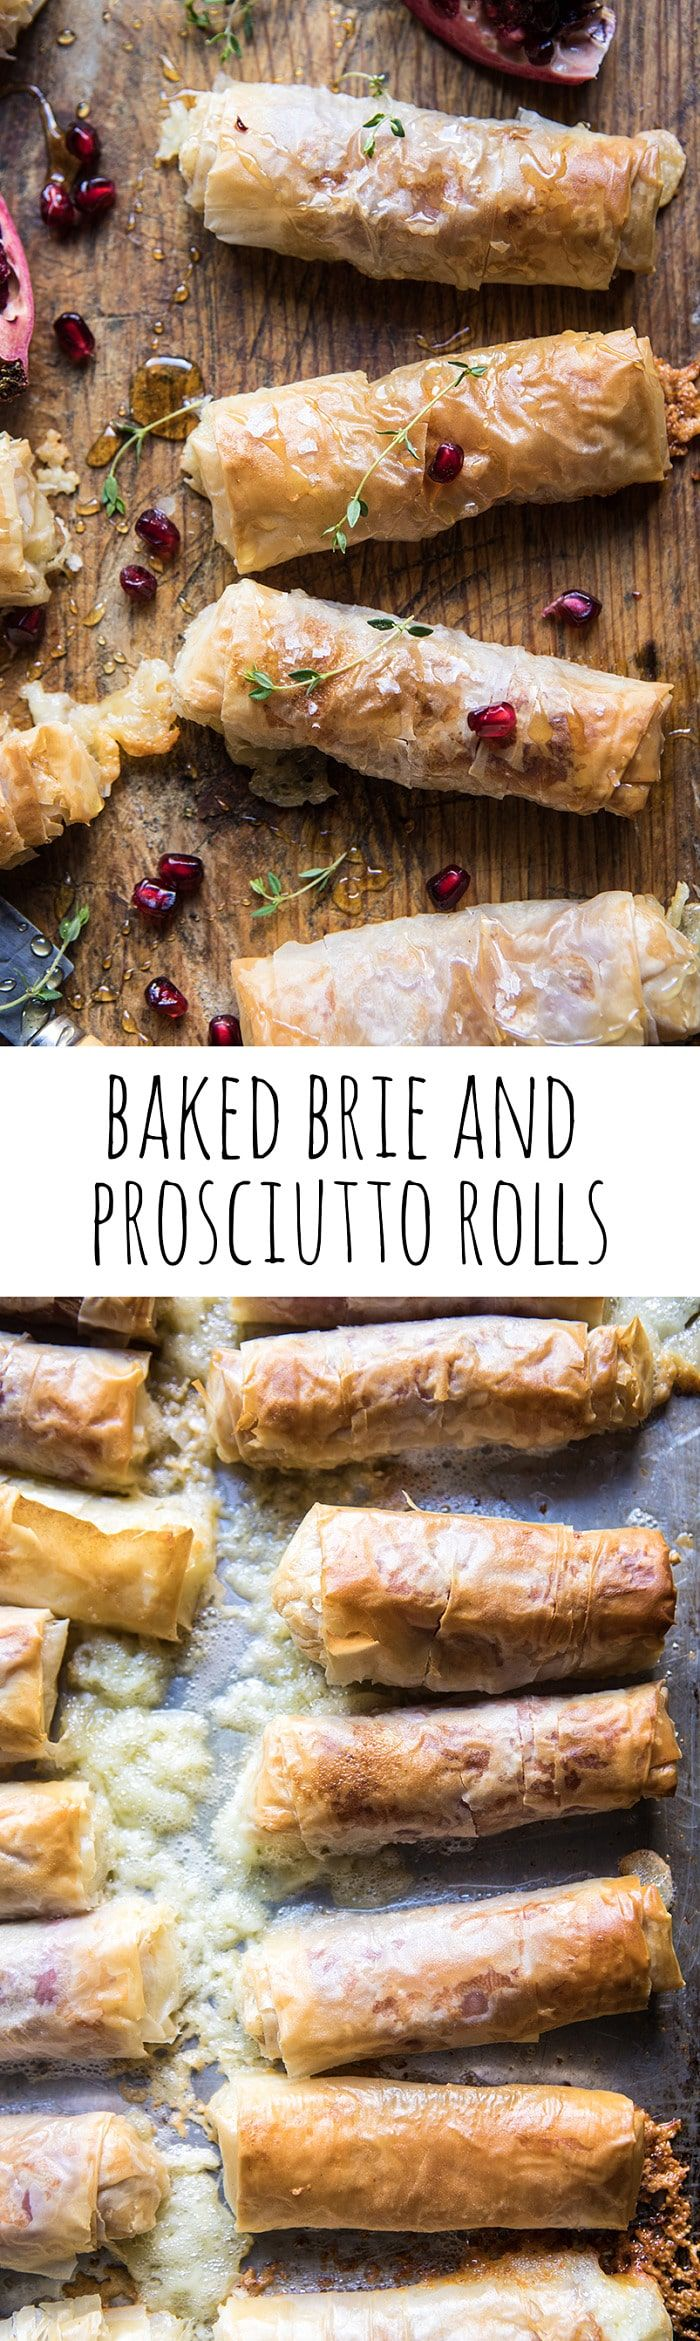 Baked Brie and Prosciutto Rolls | halfbakedharvest.com @hbharvest